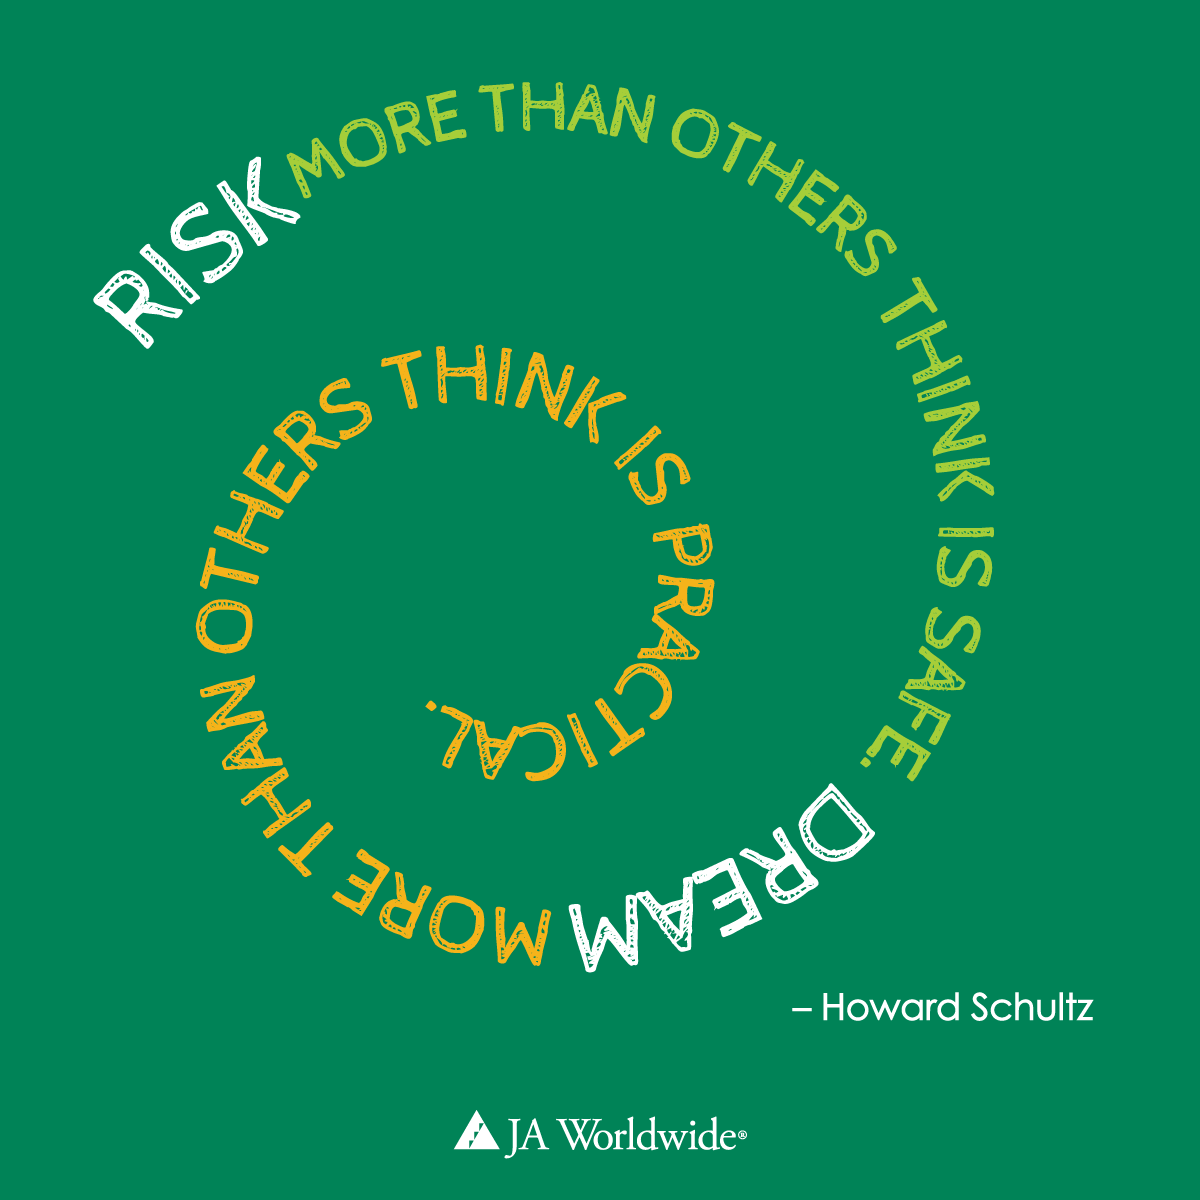 2015-10-12-Howard-Schultz-quote.png